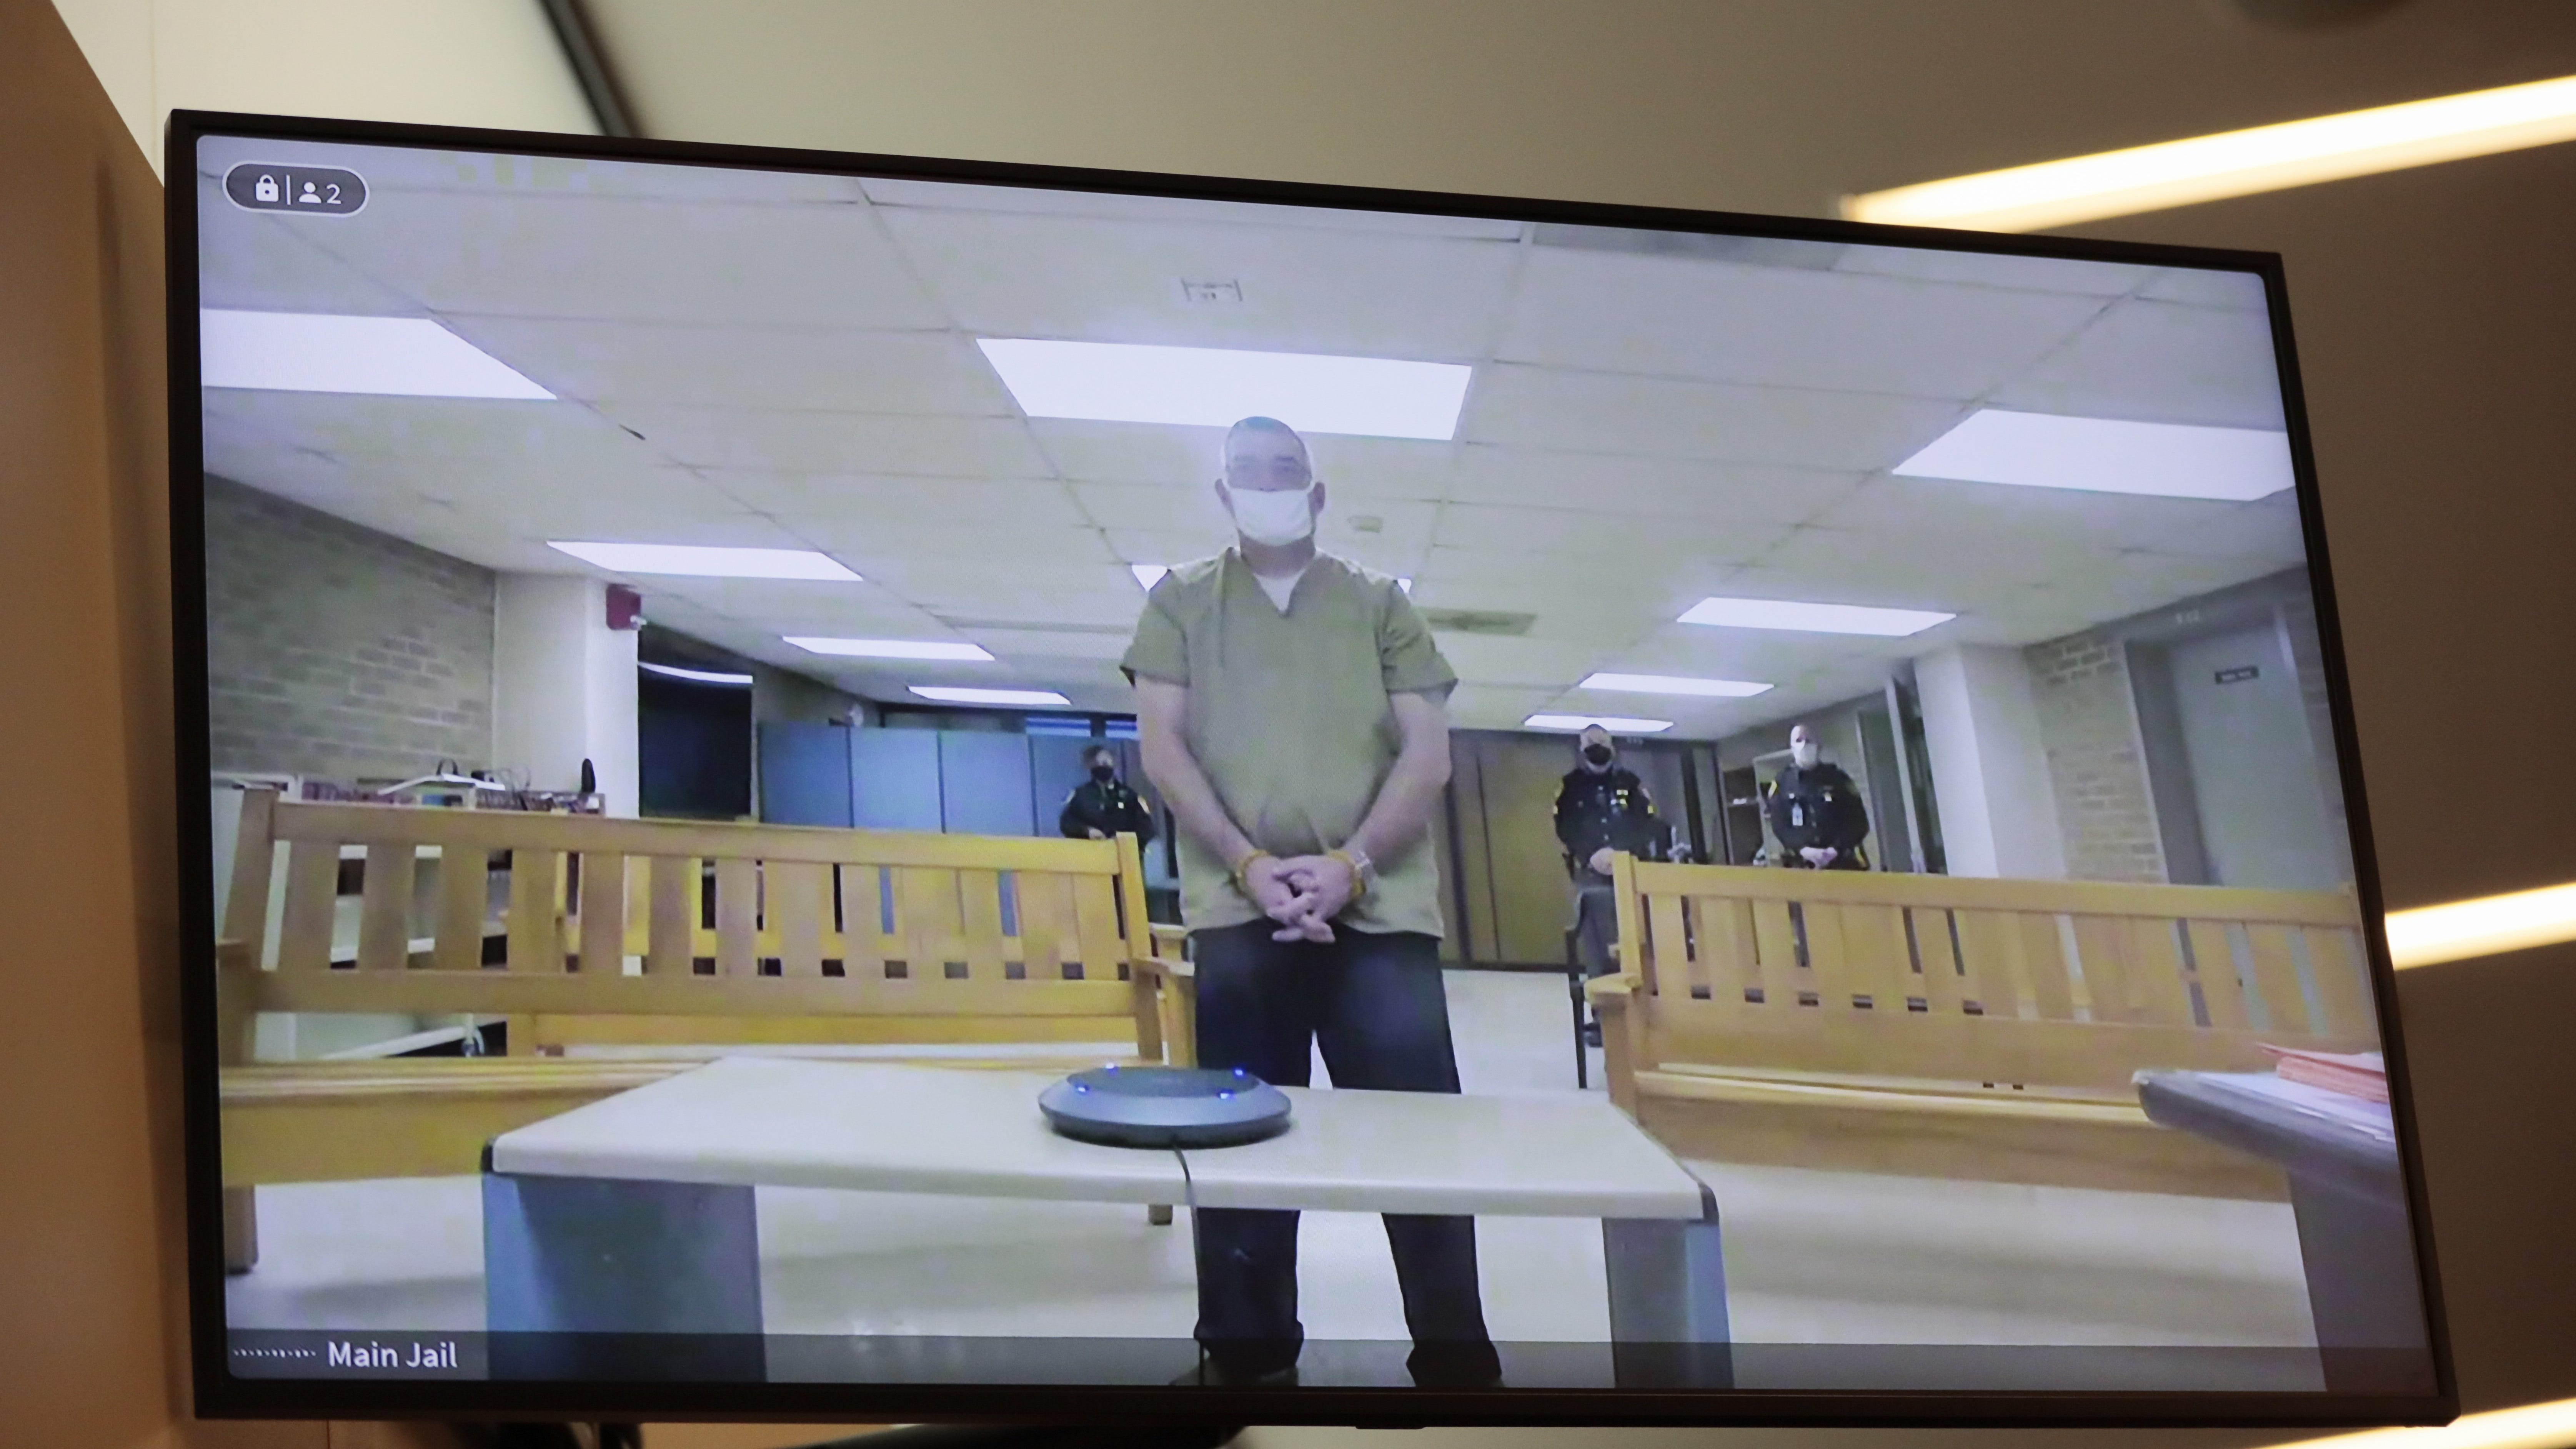 Former Columbus police officer Adam Coy is seen remotely on a television during his initial appearance on Friday, Feb. 5, 2021 at the Franklin County Common Pleas Courthouse in Columbus, Ohio. Coy was arraigned on four charges in the December 2020 police shooting death of Andre Hill, a Black man. Coy was charged with one count of murder, one count of felonious assault and two counts of dereliction of duty, one of which was for failure to render aid to Hill after he was shot. His bond was set at $3 million.